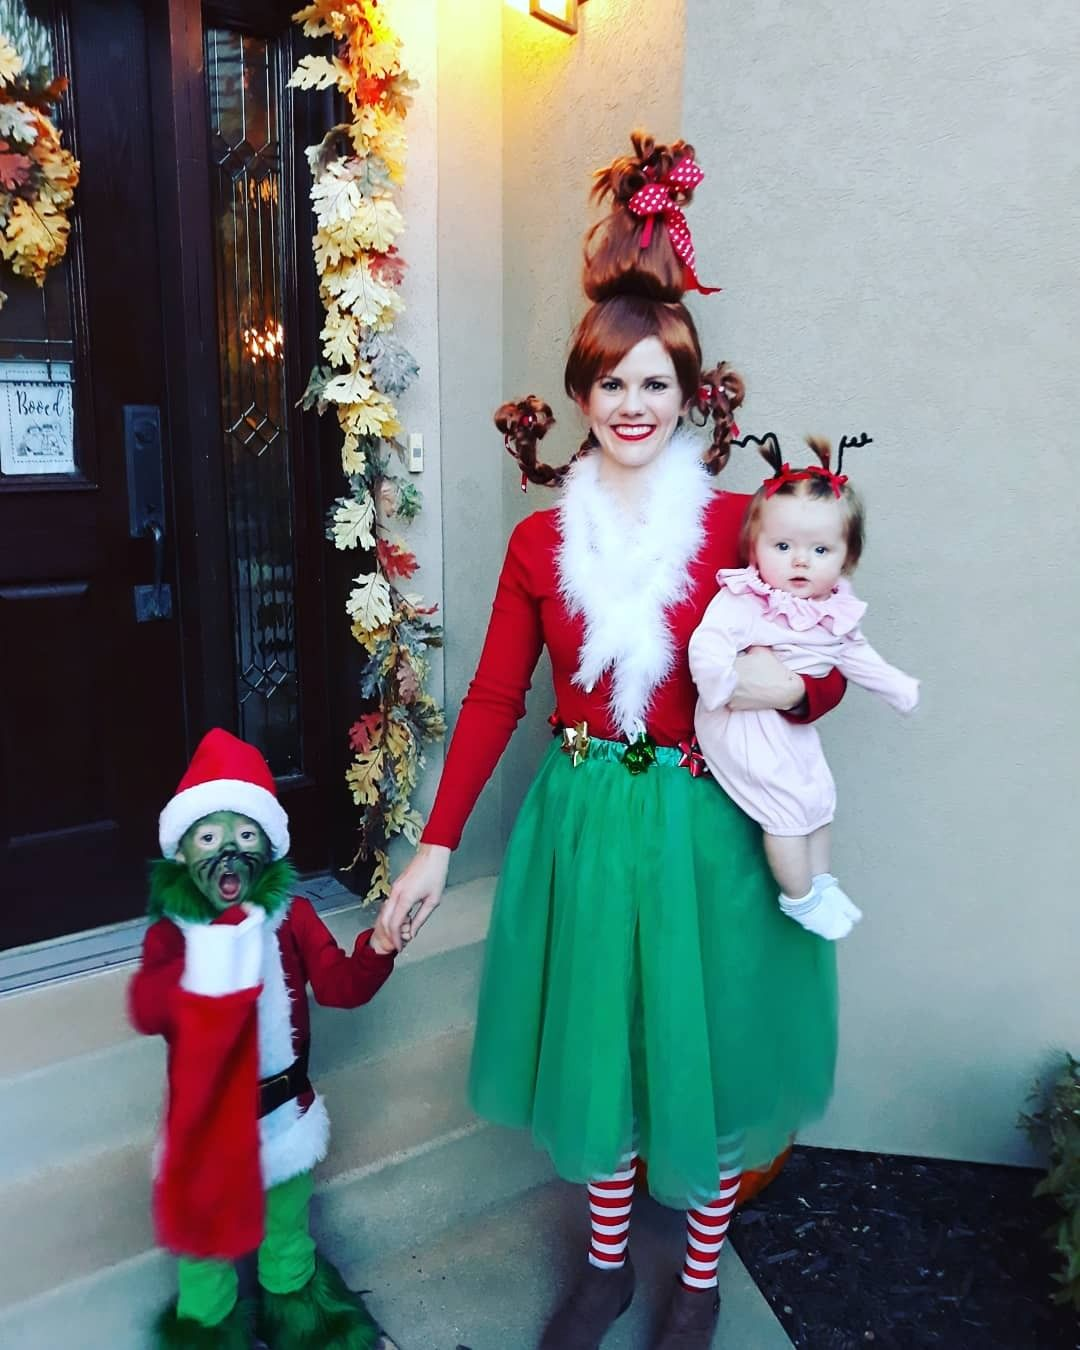 c3734aa4db64 Baby Cindy Lou Who Costume, Toddler Grinch Costume, Mom and kid costumes,  family costumes